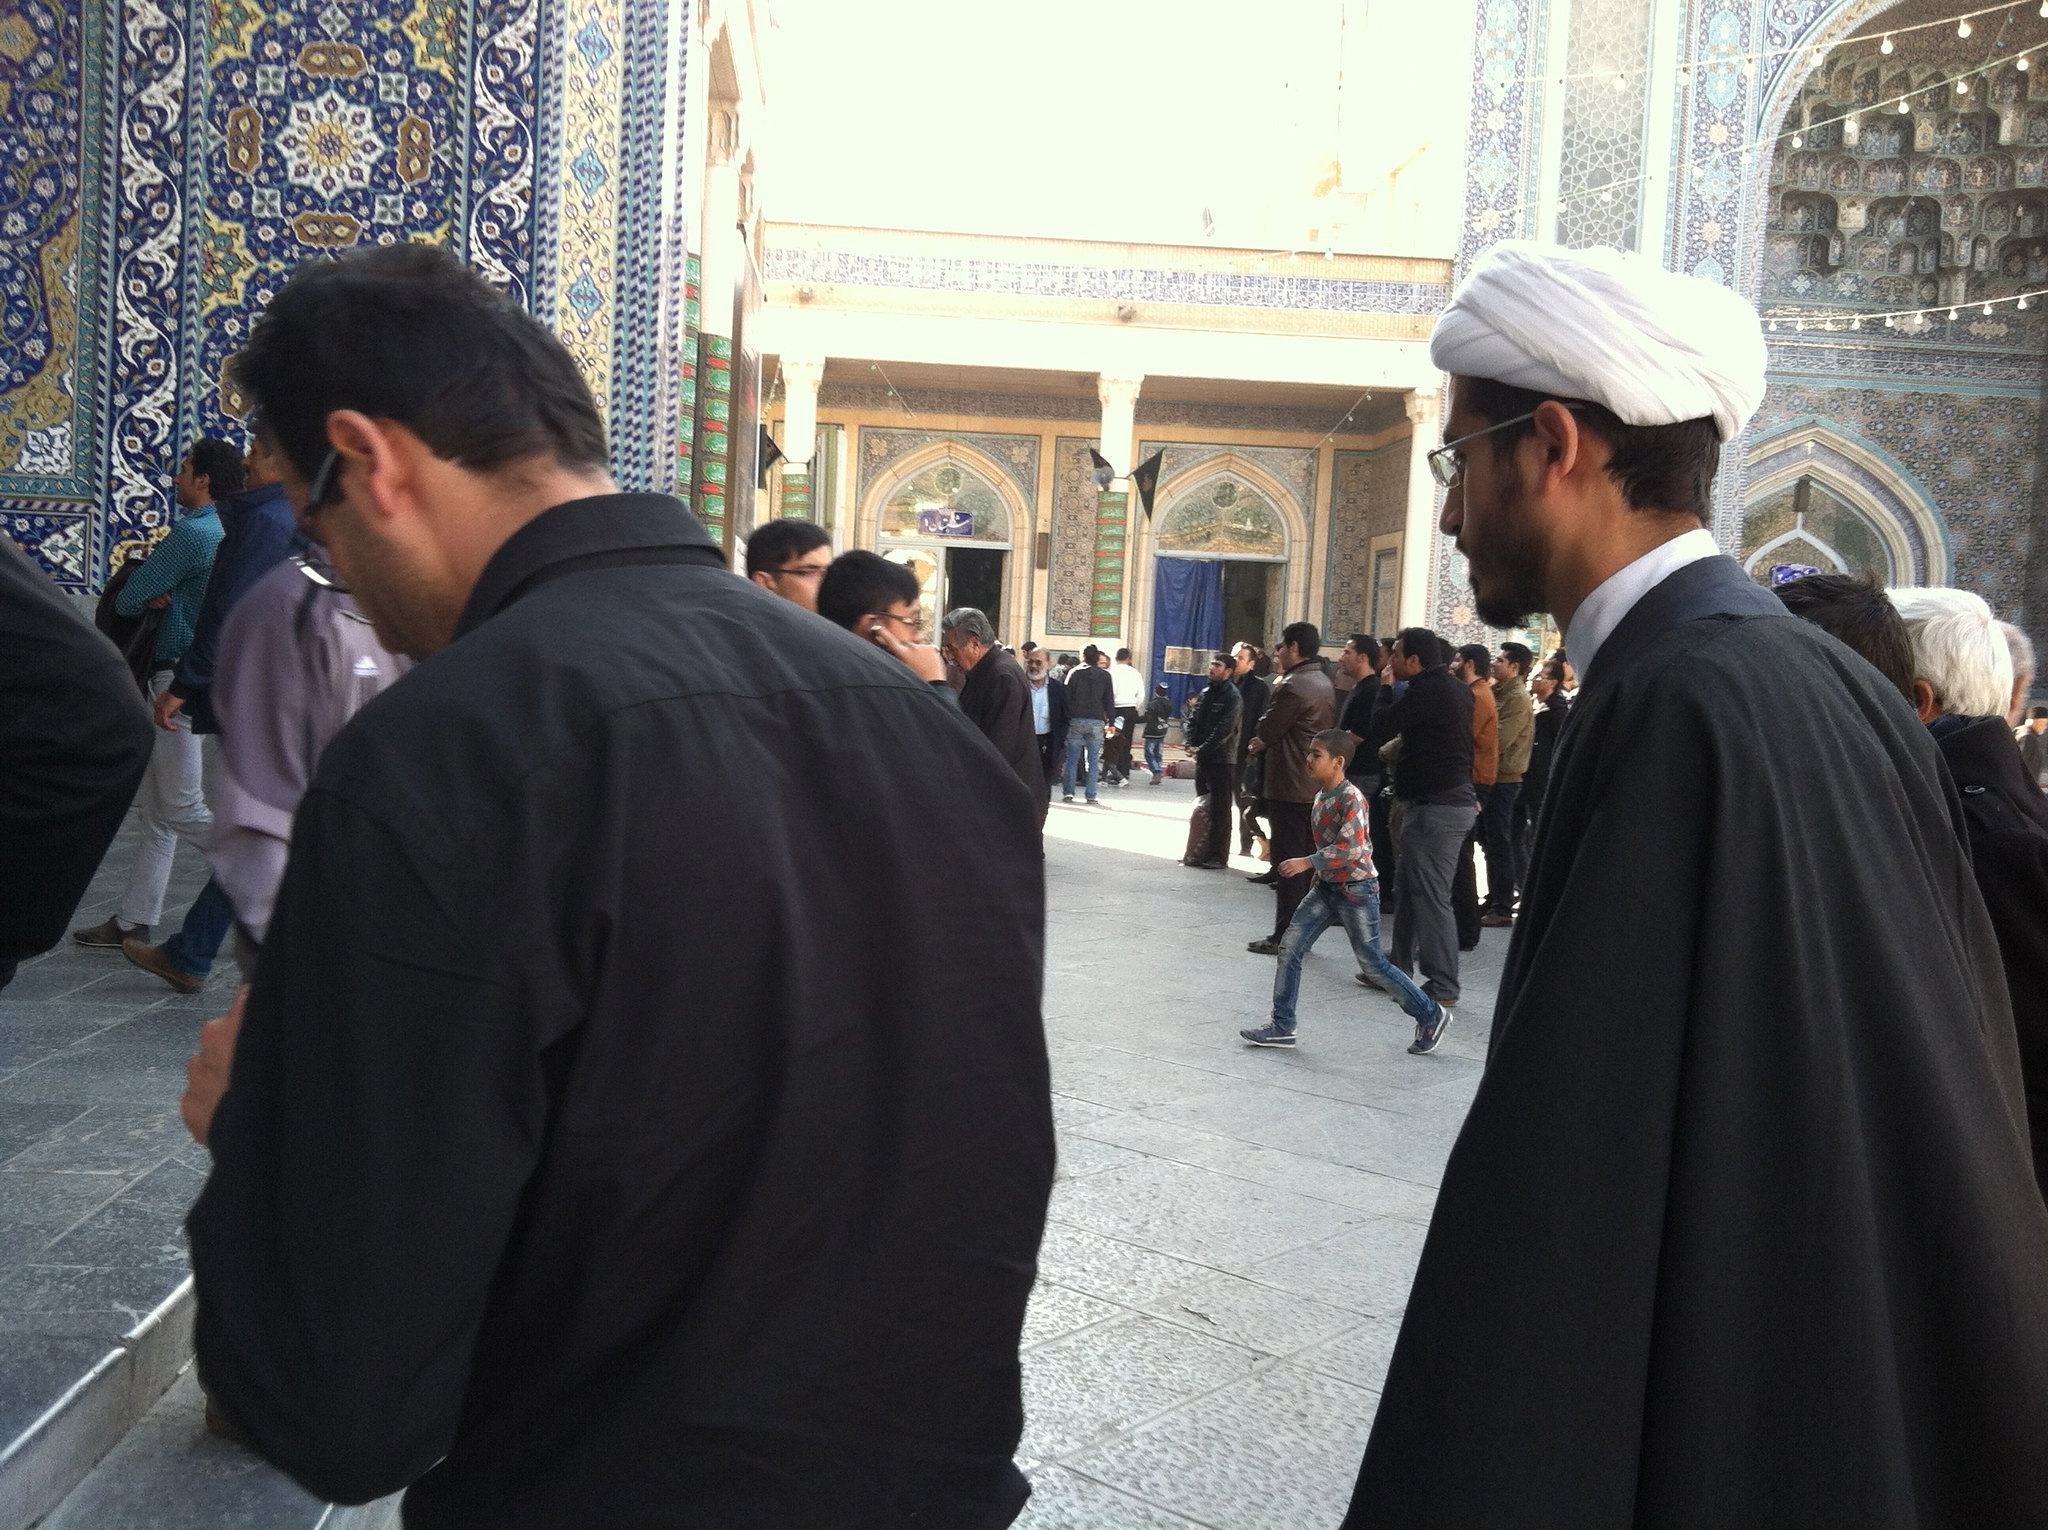 Men enter the Mosque to Pray. Qom, Iran